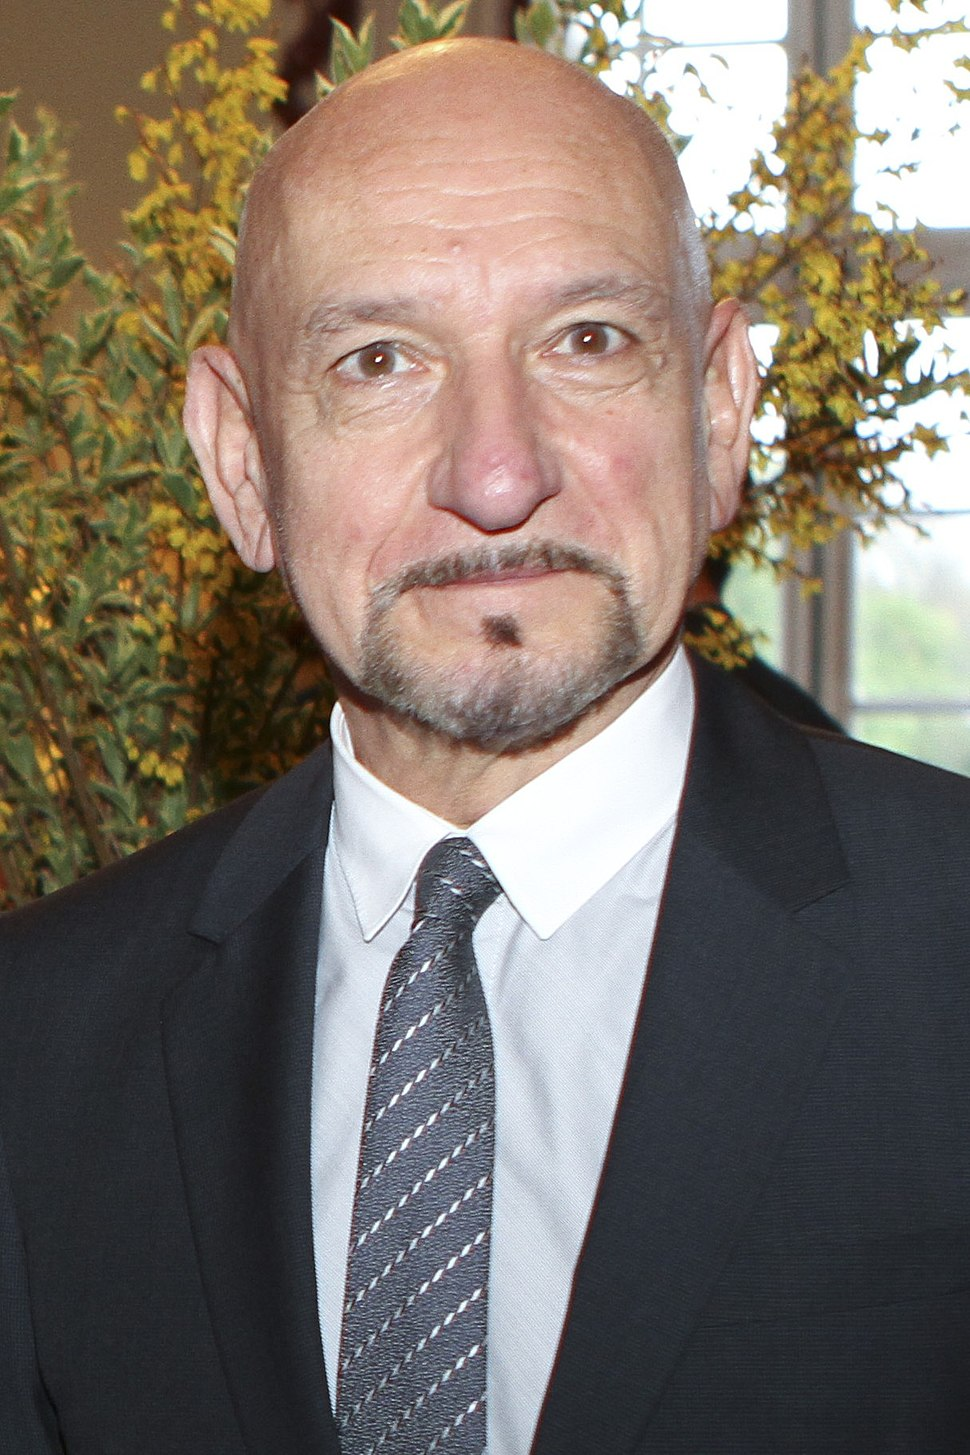 Photo of Ben Kingsley at the 2008 Tribeca Film Festival.